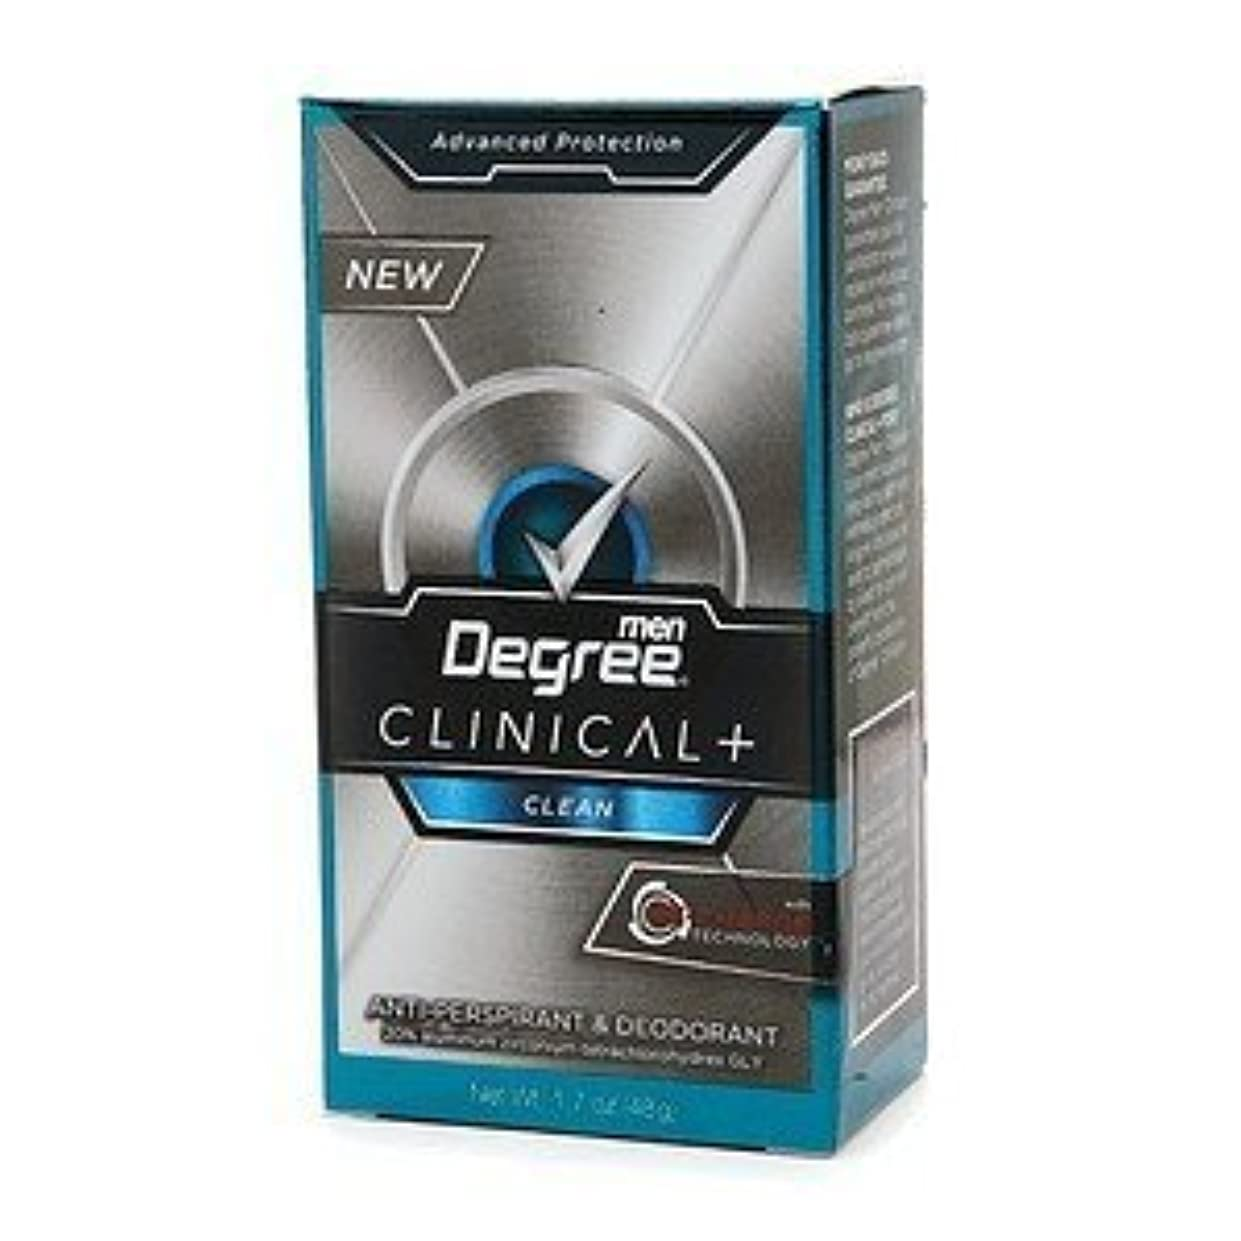 クリエイティブ花瓶早くDegree Men Clinical+ Antiperspirant & Deodorant, Clean, 50g (Pack of 6) (並行輸入品)